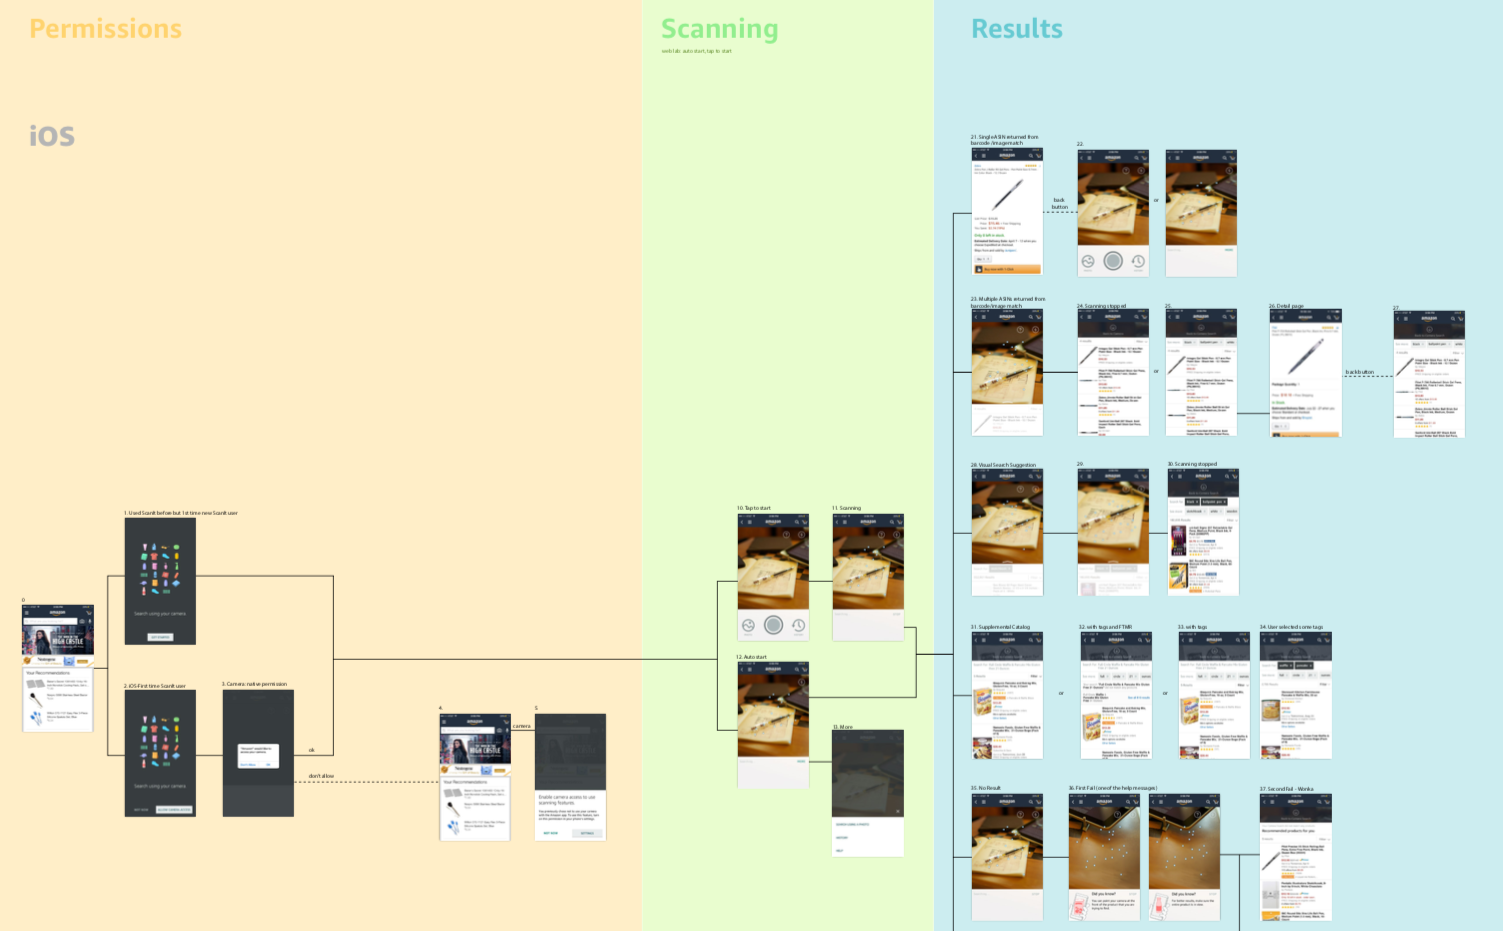 flow_mapping the results.png